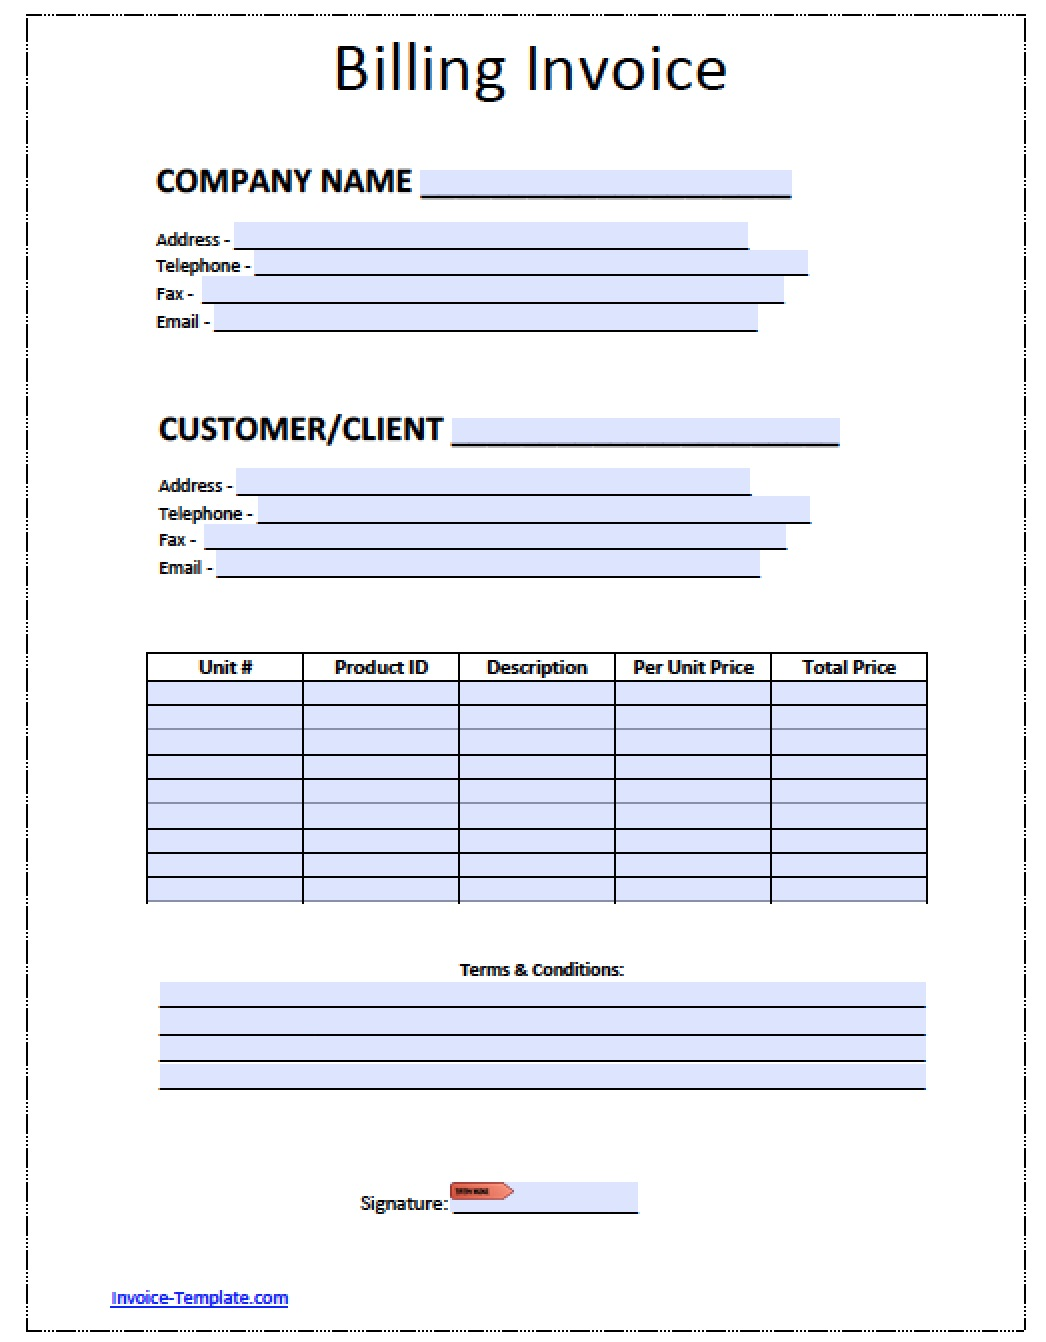 Reliefworkersus  Picturesque Billing Invoice Invoices Faq U Cloudflare Support Billing  With Hot Free Billing Invoice Template  Excel  Pdf  Word Doc  Billing With Awesome Einvoicing Software Also Online Free Invoice In Addition Lps New Invoice And Free Fillable Invoice Template As Well As Google Templates Invoice Additionally Invoice Capture From Happytomco With Reliefworkersus  Hot Billing Invoice Invoices Faq U Cloudflare Support Billing  With Awesome Free Billing Invoice Template  Excel  Pdf  Word Doc  Billing And Picturesque Einvoicing Software Also Online Free Invoice In Addition Lps New Invoice From Happytomco